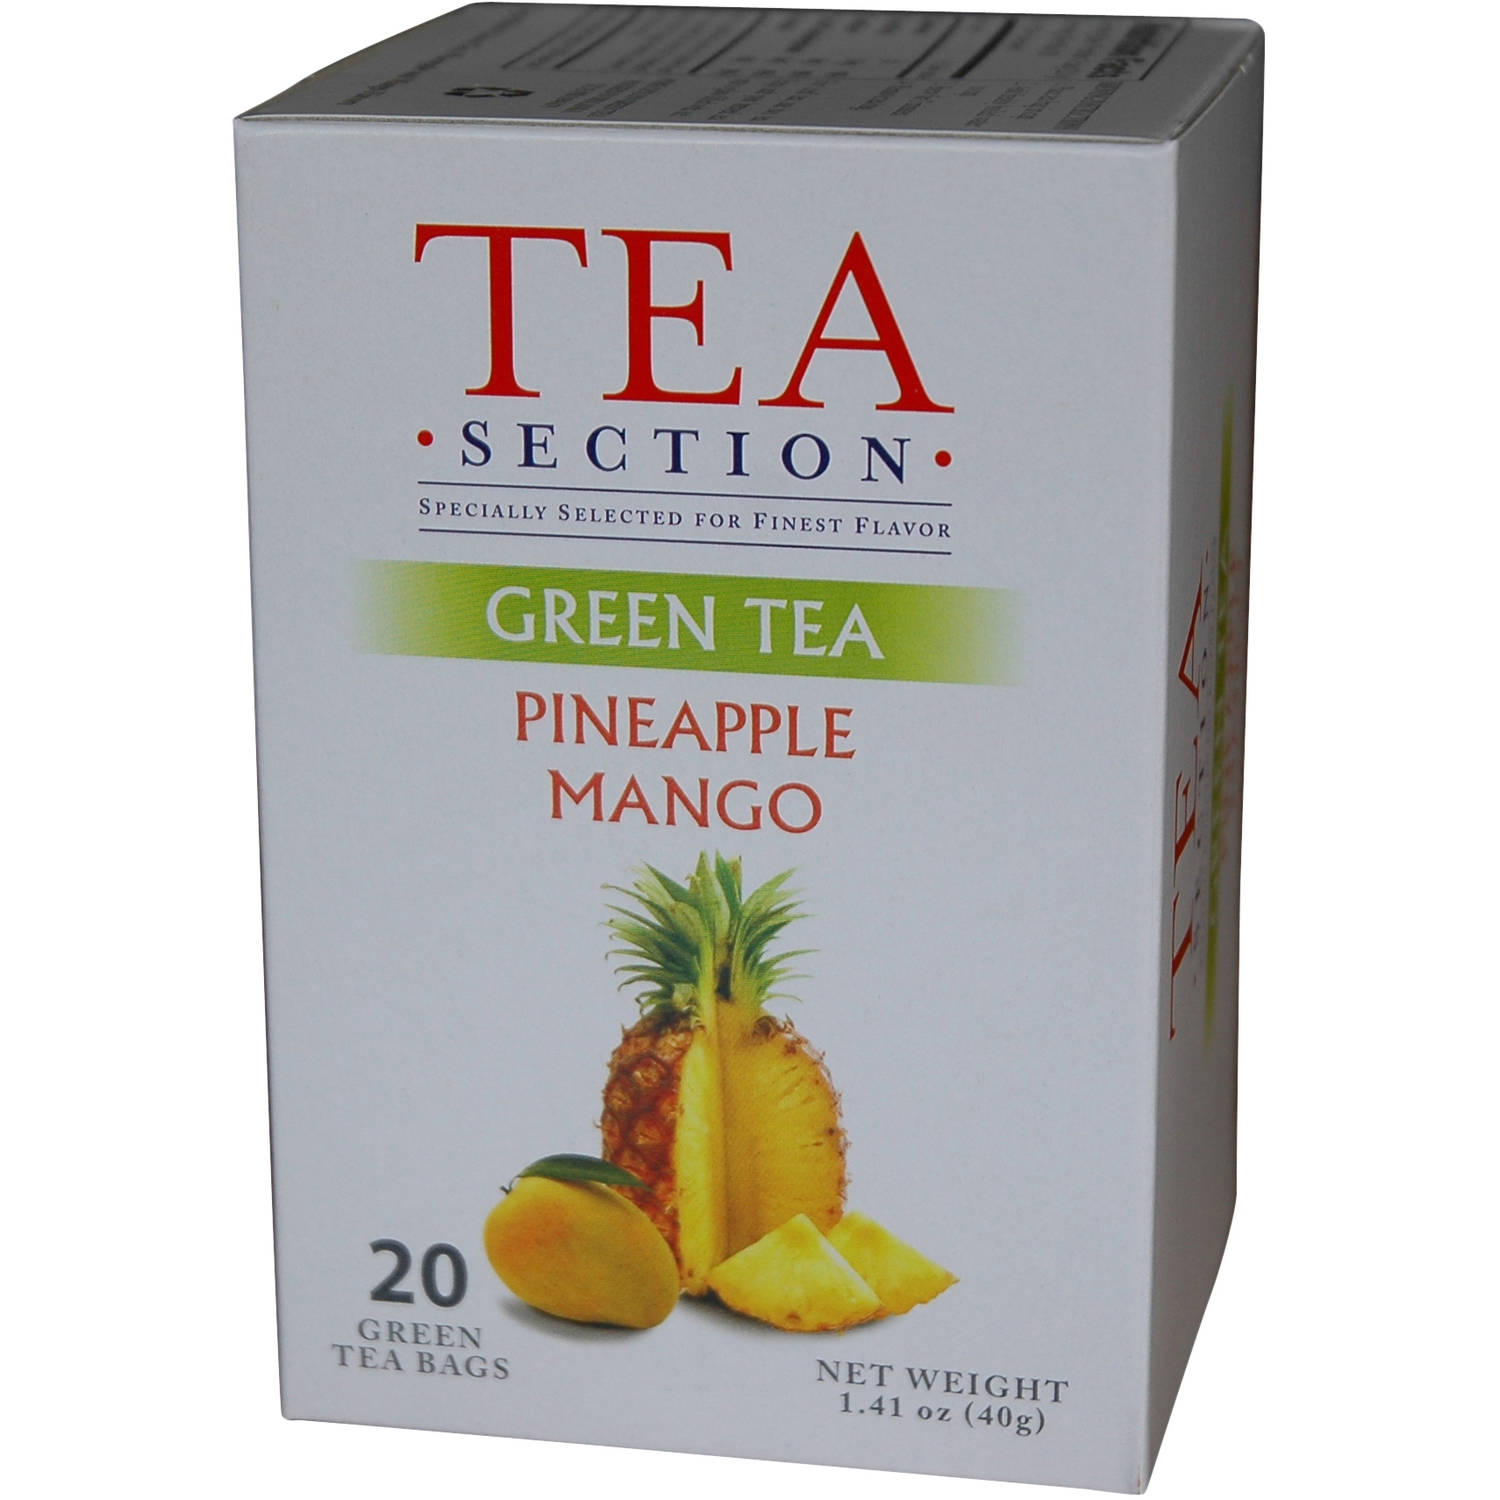 Tea Section Pineapple Mango Green Tea Bags, 20 count, 1.41 oz